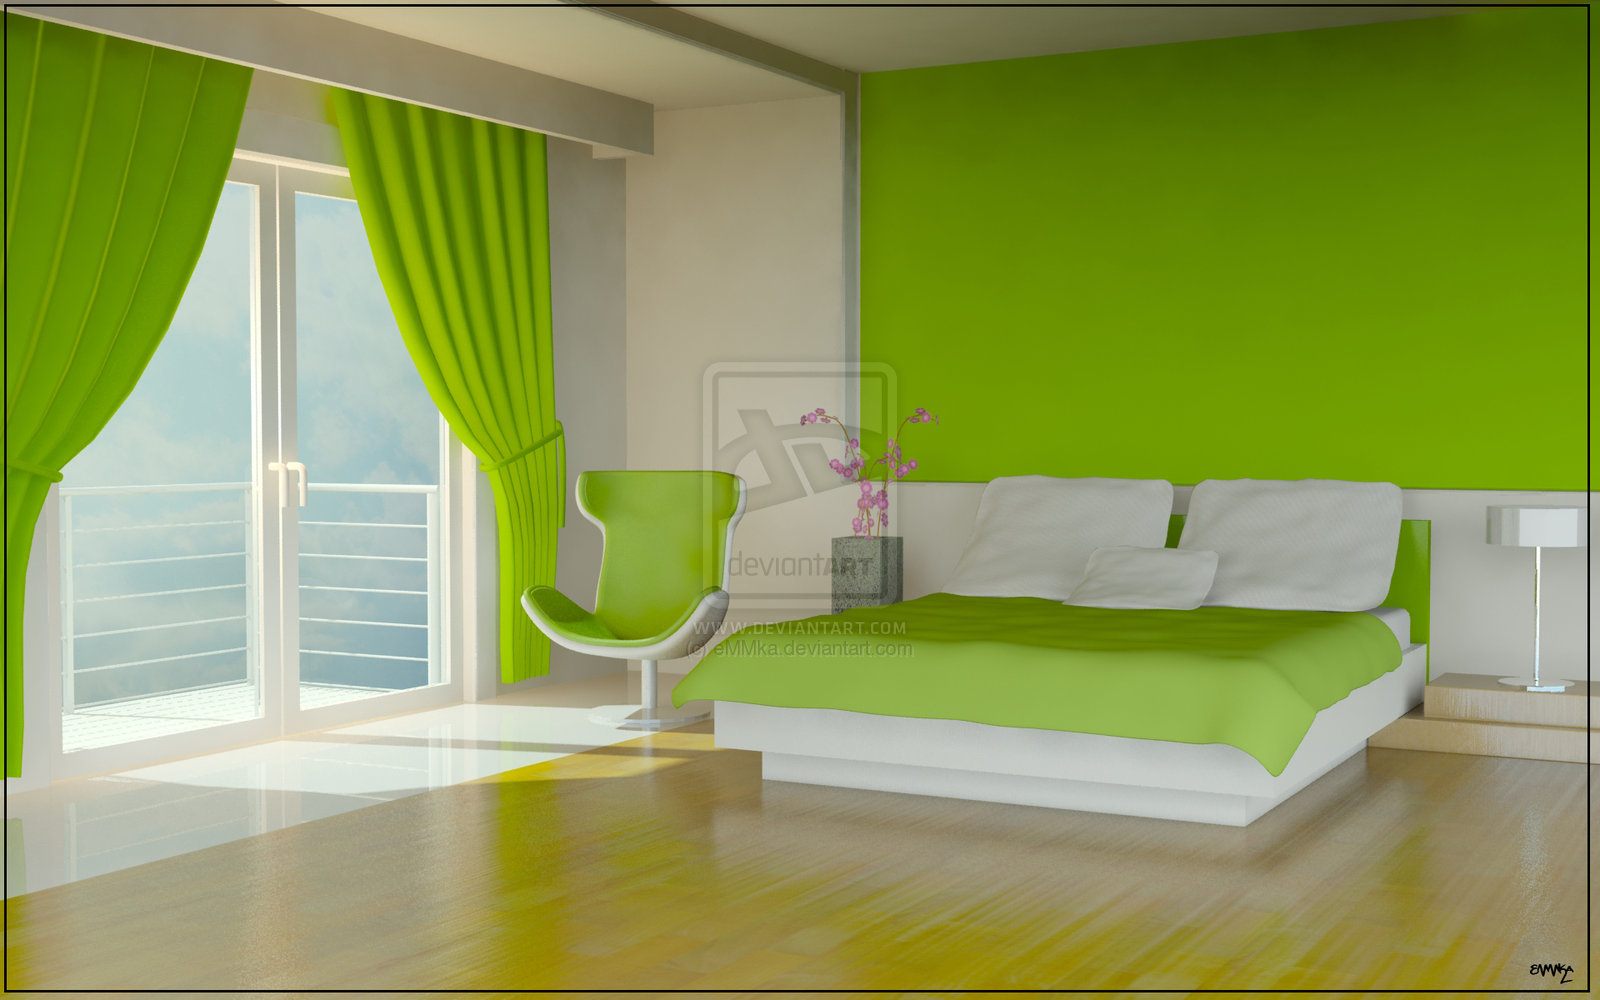 Muebles y Decoración de Interiores: El Color Verde para ...